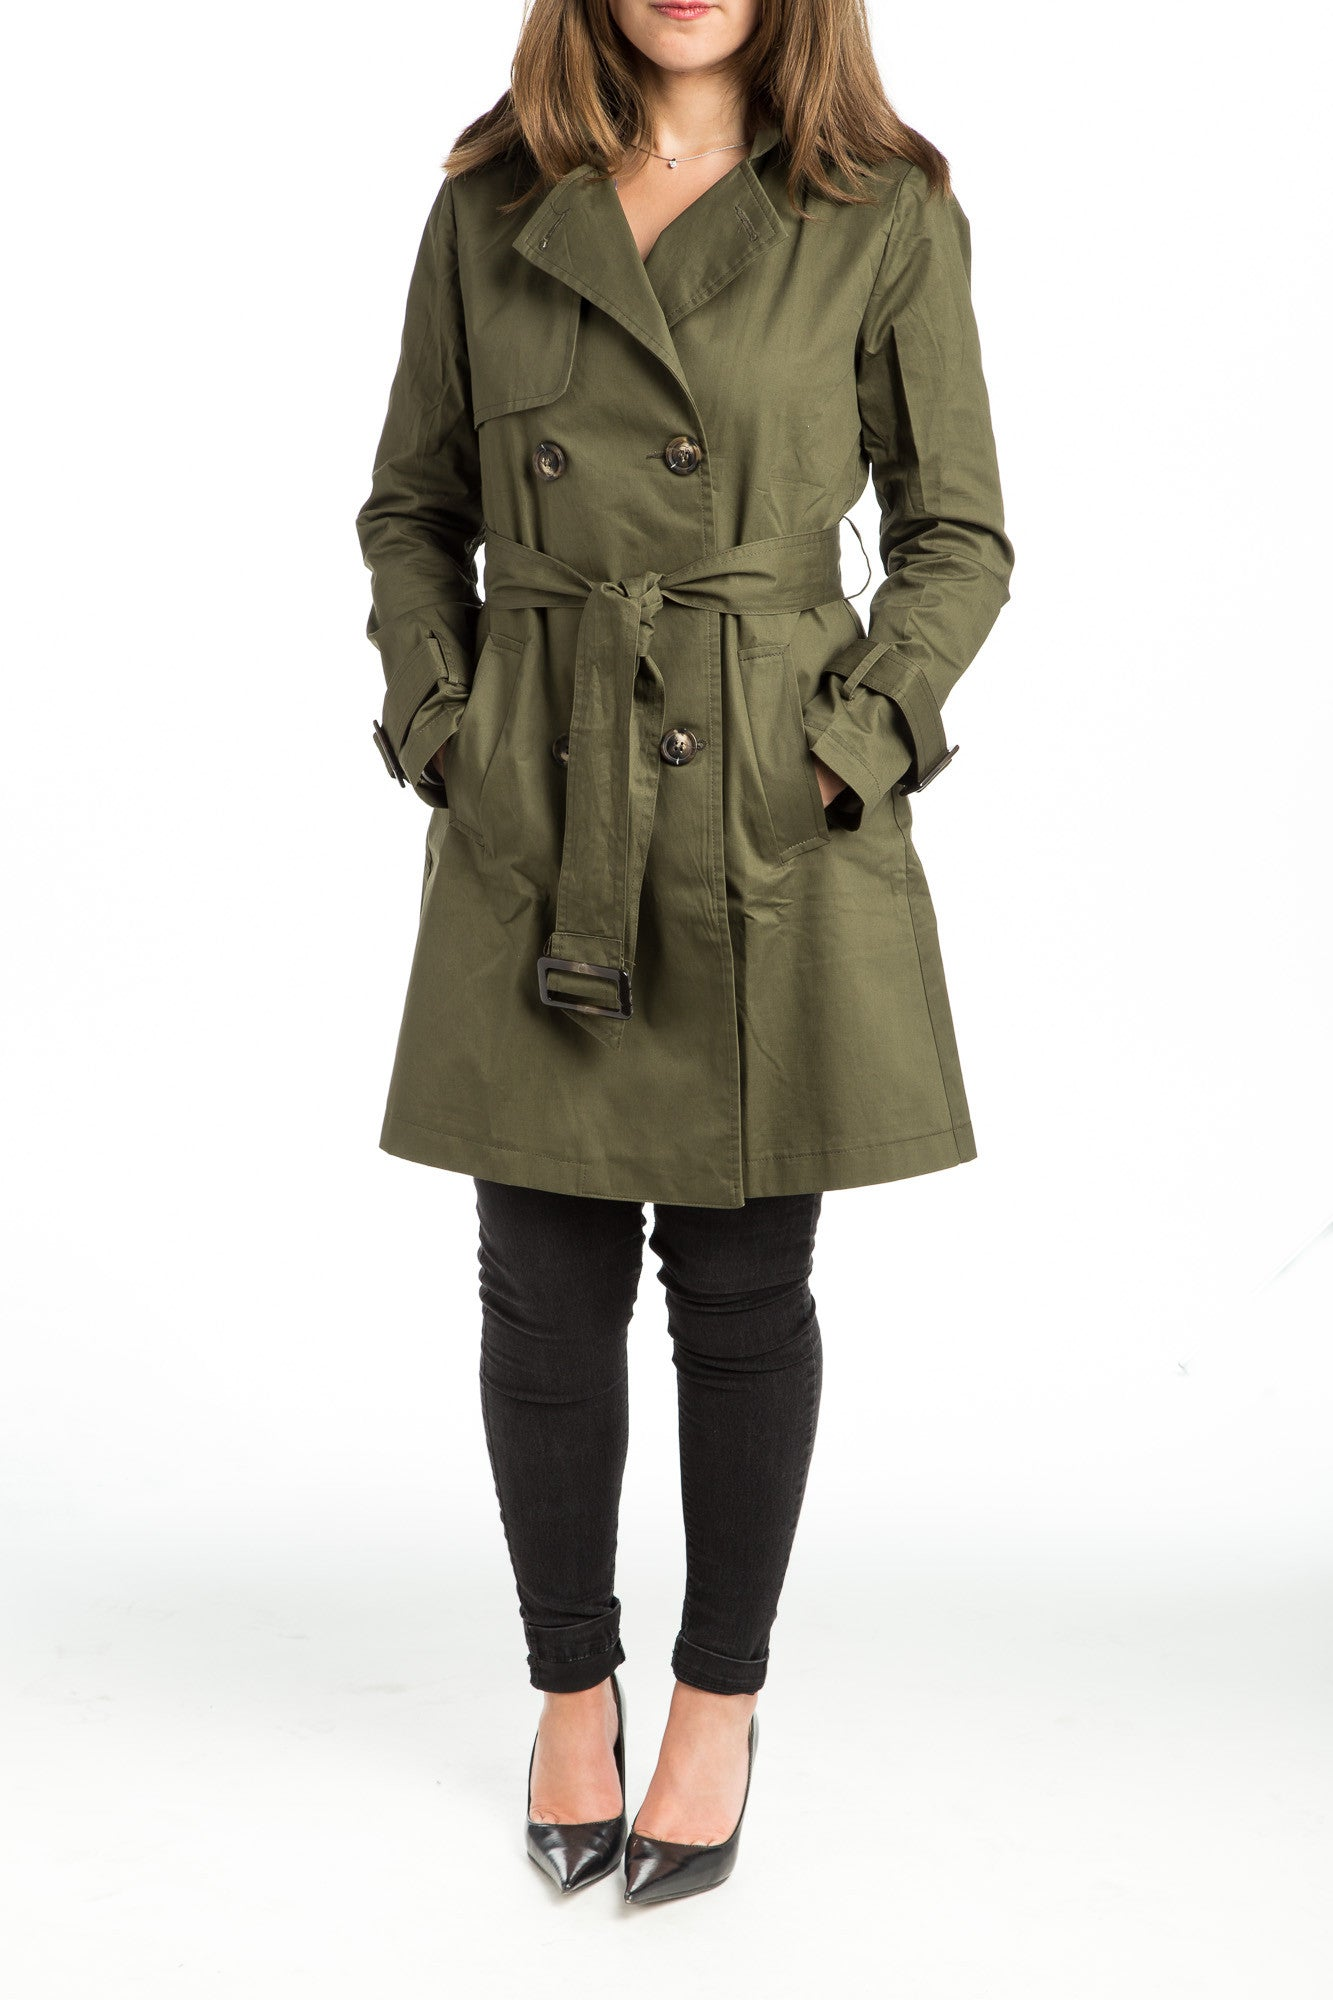 SHERA Trench Coat - 2 colors available - Mademoiselle Veste - 5